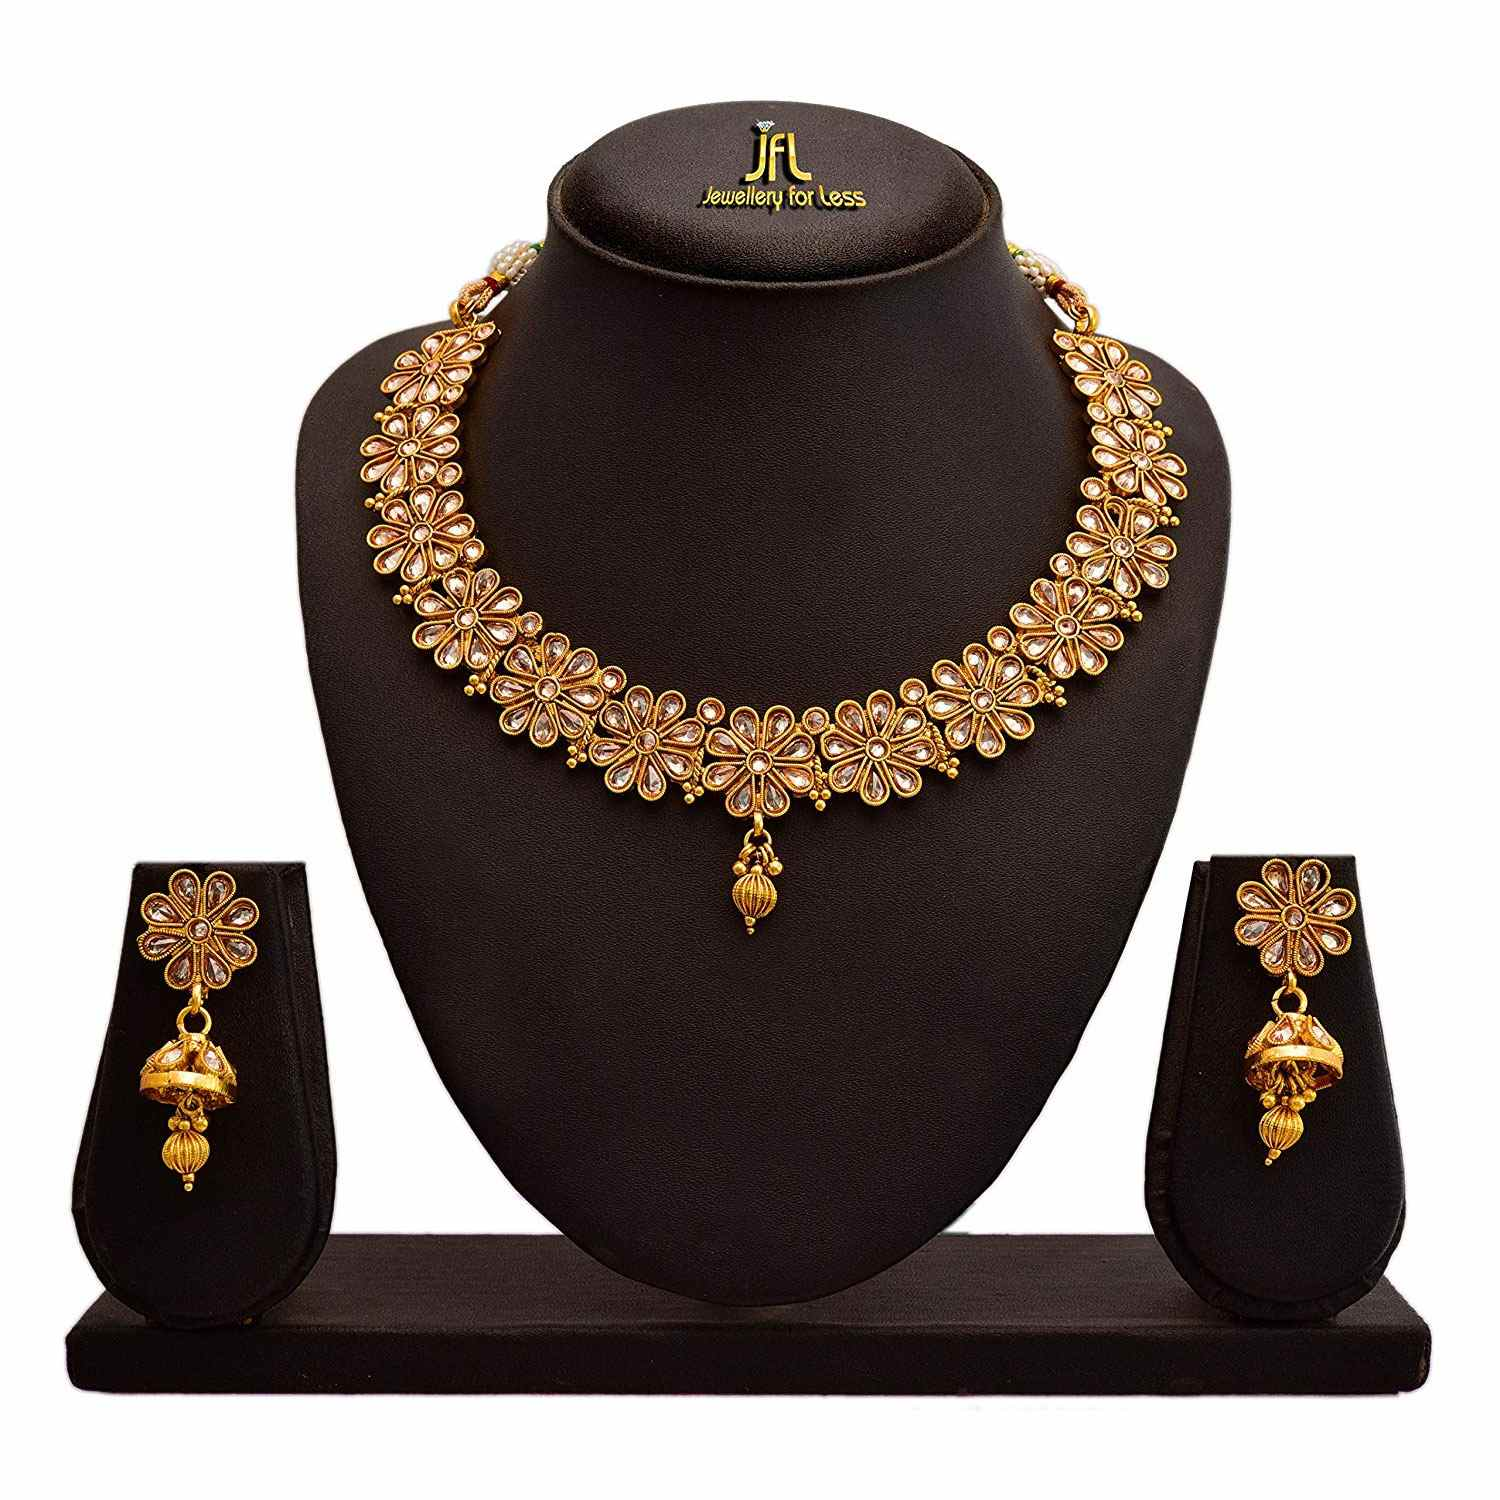 JFL - Traditional Ethnic One Gram Gold Plated Polki Diamond Designer Necklace set with Earring for Women & Girls.